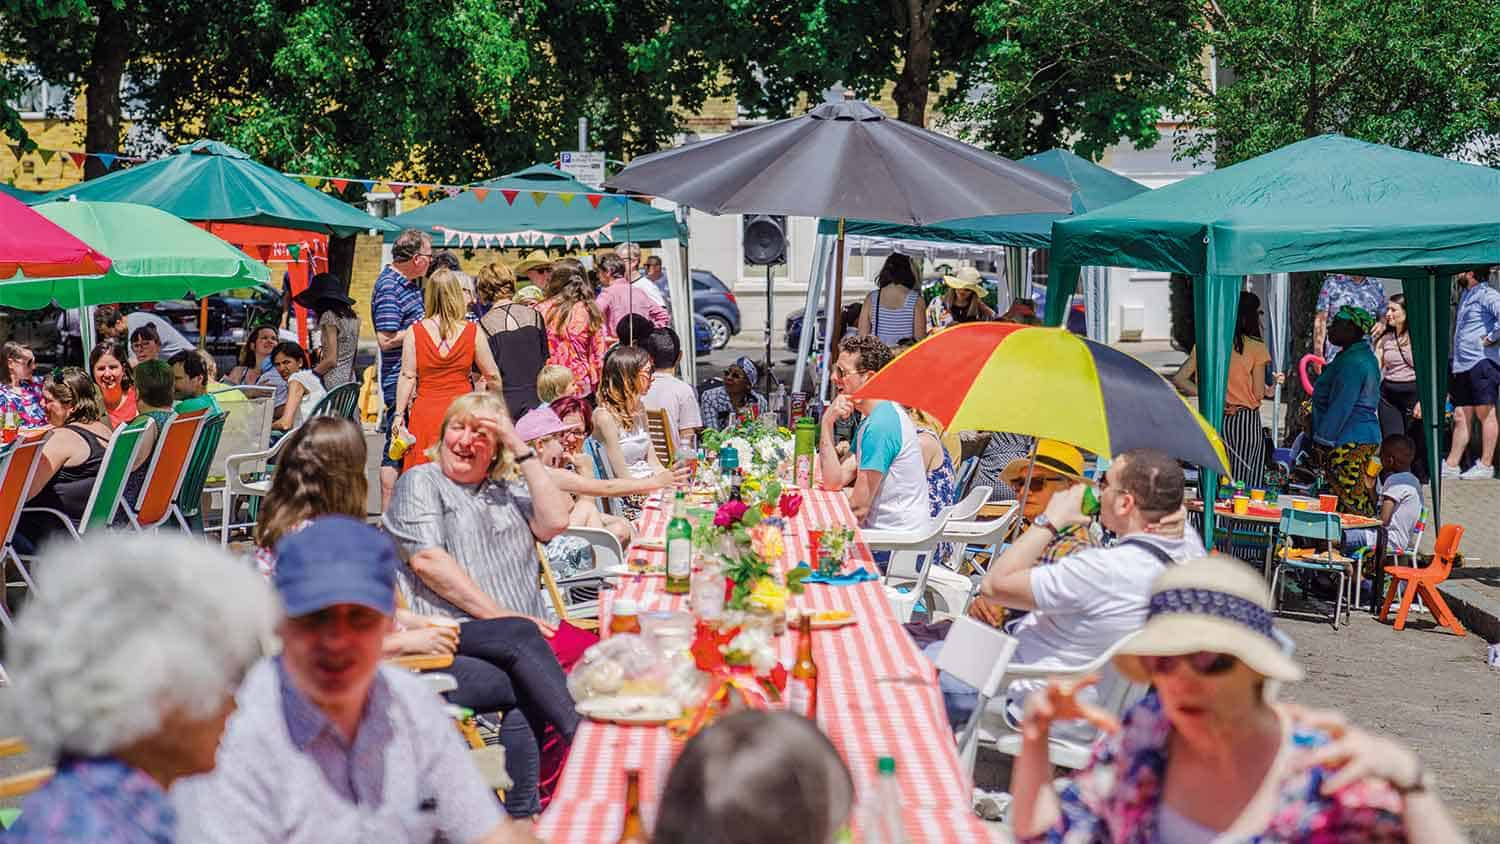 The community enjoying a picnic lunch together